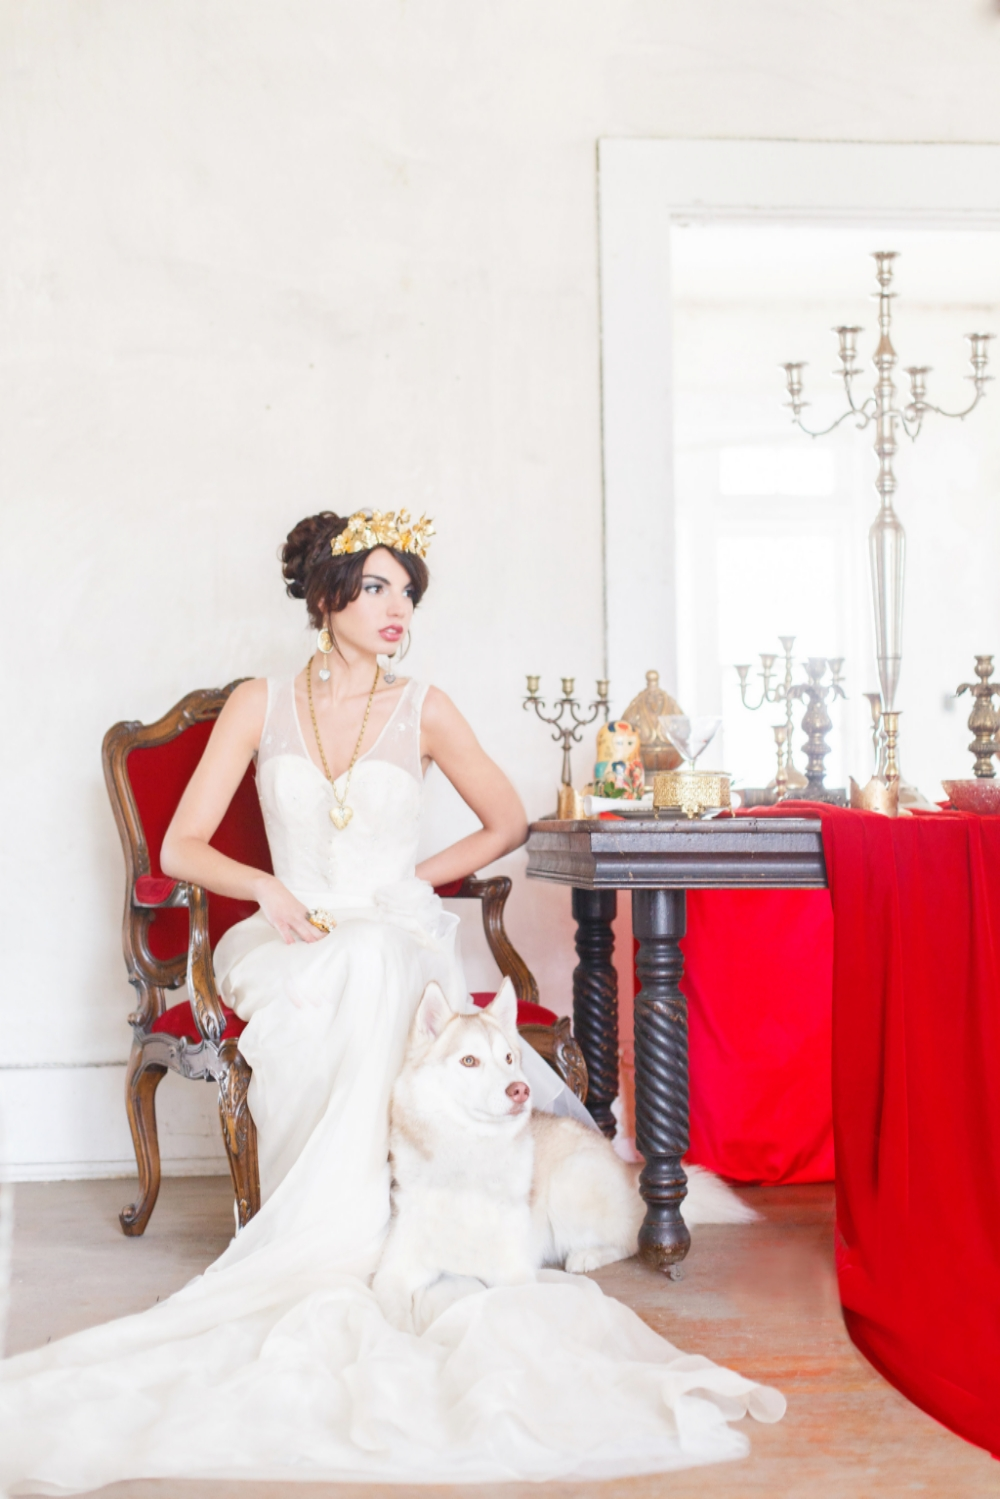 Old Russia, Vintage Wedding Inspiration | Edera Jewelry Blog